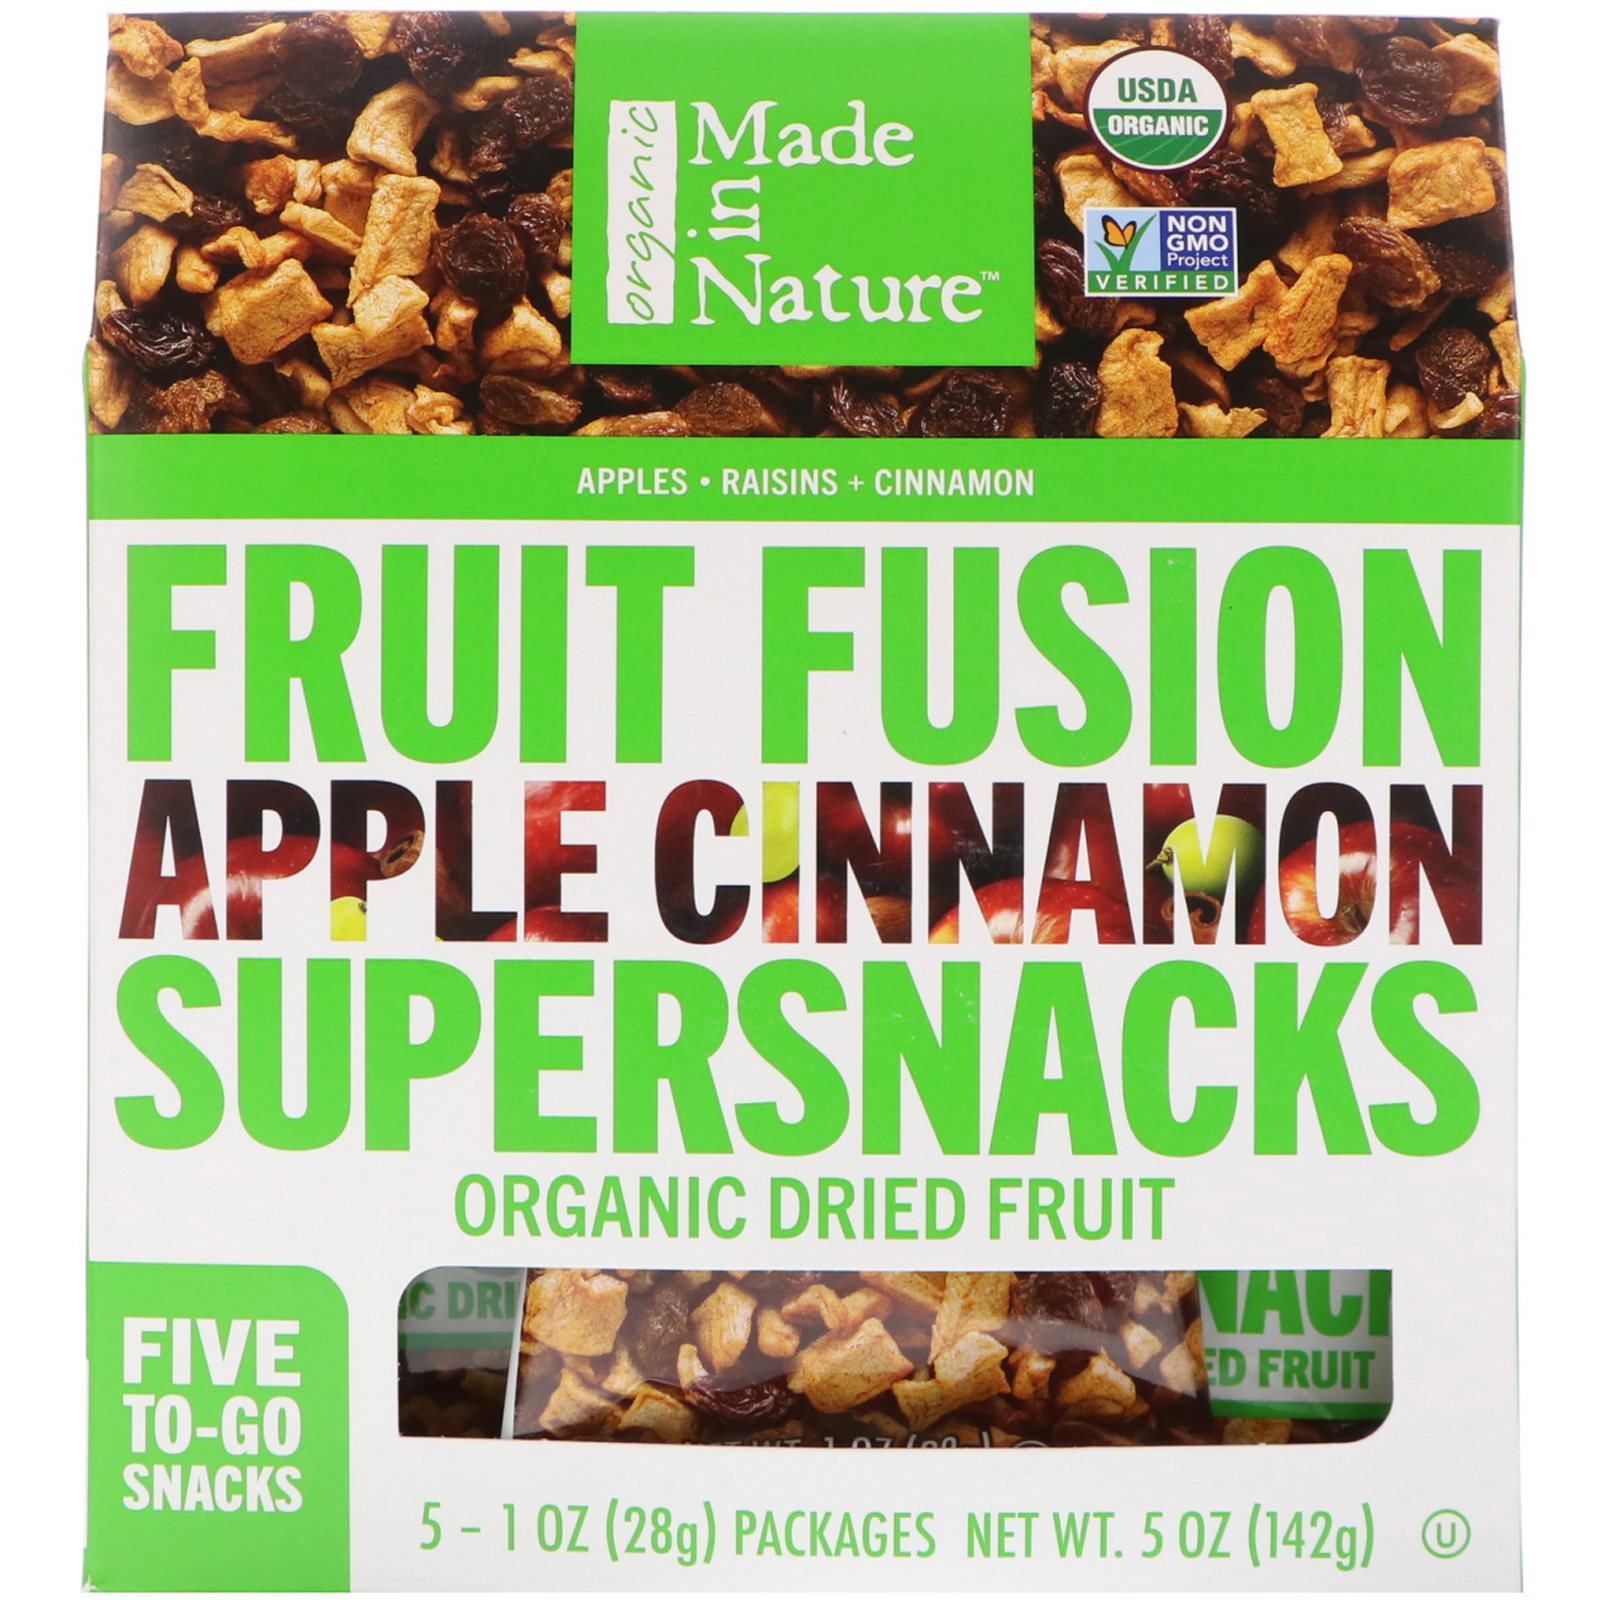 a0aa0ac18c1 Made in Nature, Organic Fruit Fusion, Apple Cinnamon Supersnacks, 5  Packages, 1